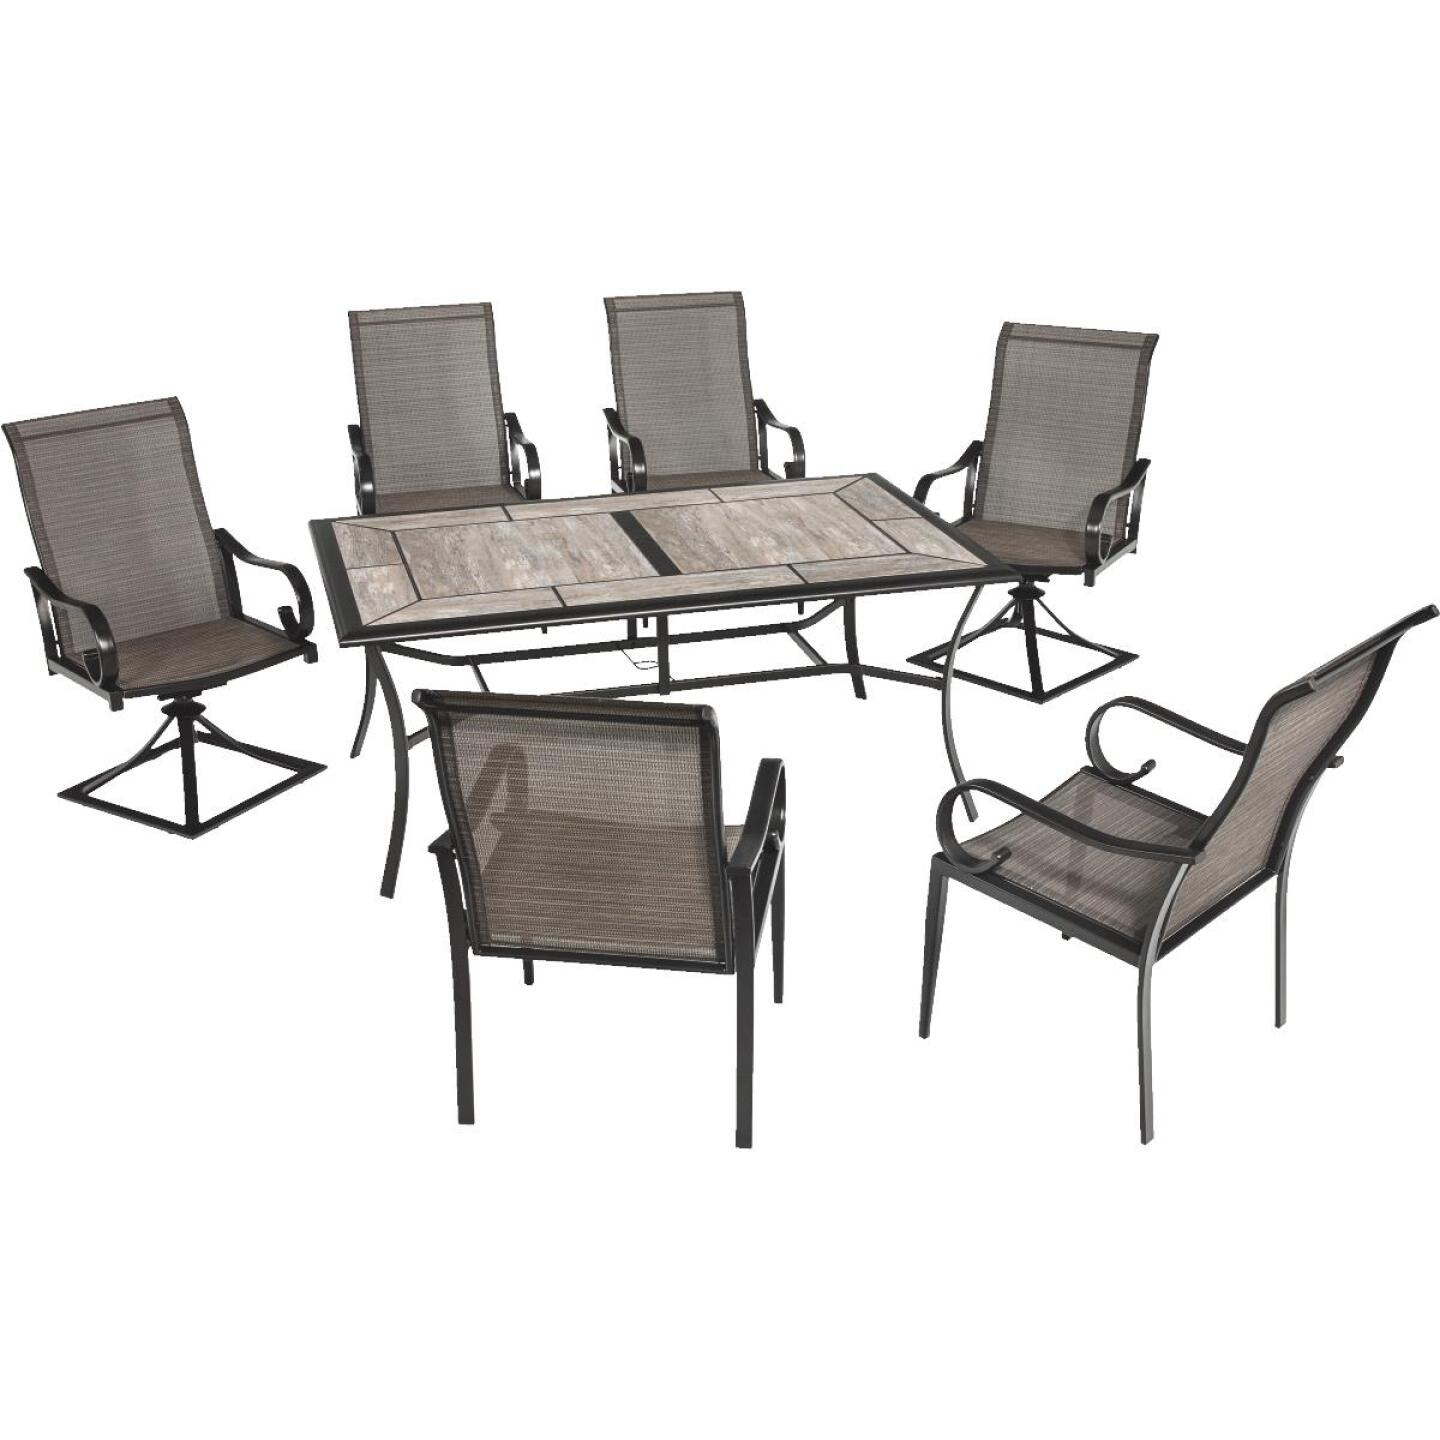 Outdoor Expressions Berkshire 7-Piece Dining Set Image 268